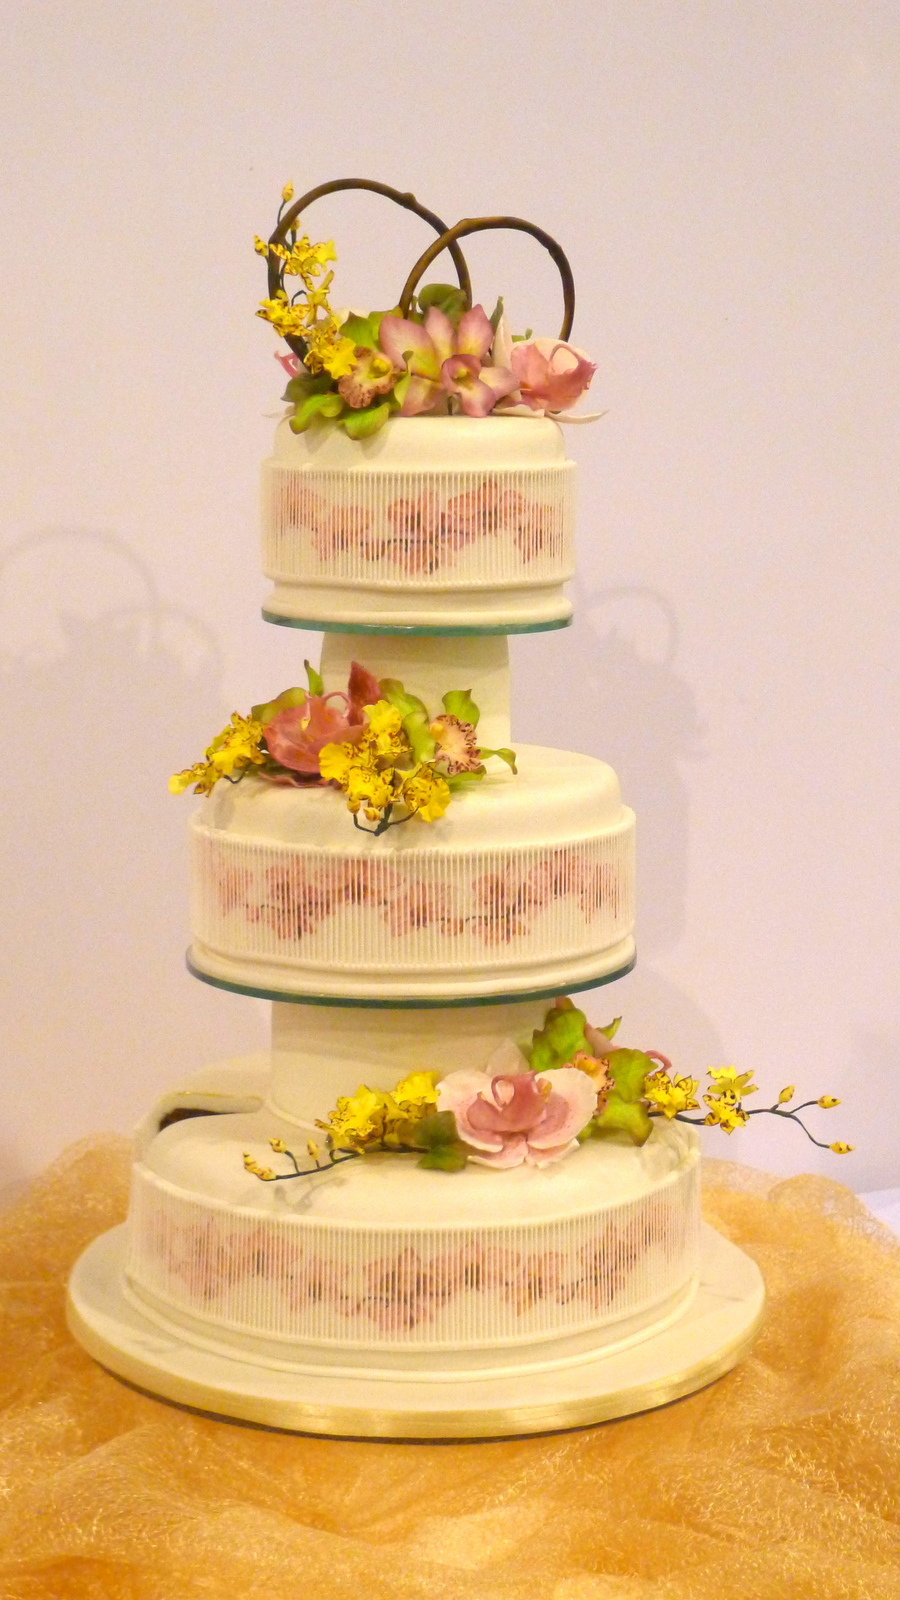 My Wedding Cake Entry At The 2012 Philippine Culinary Cup A Wacs Endorsed Culinary Competition This 3 Tiered Cake Represents The Oriental on Cake Central